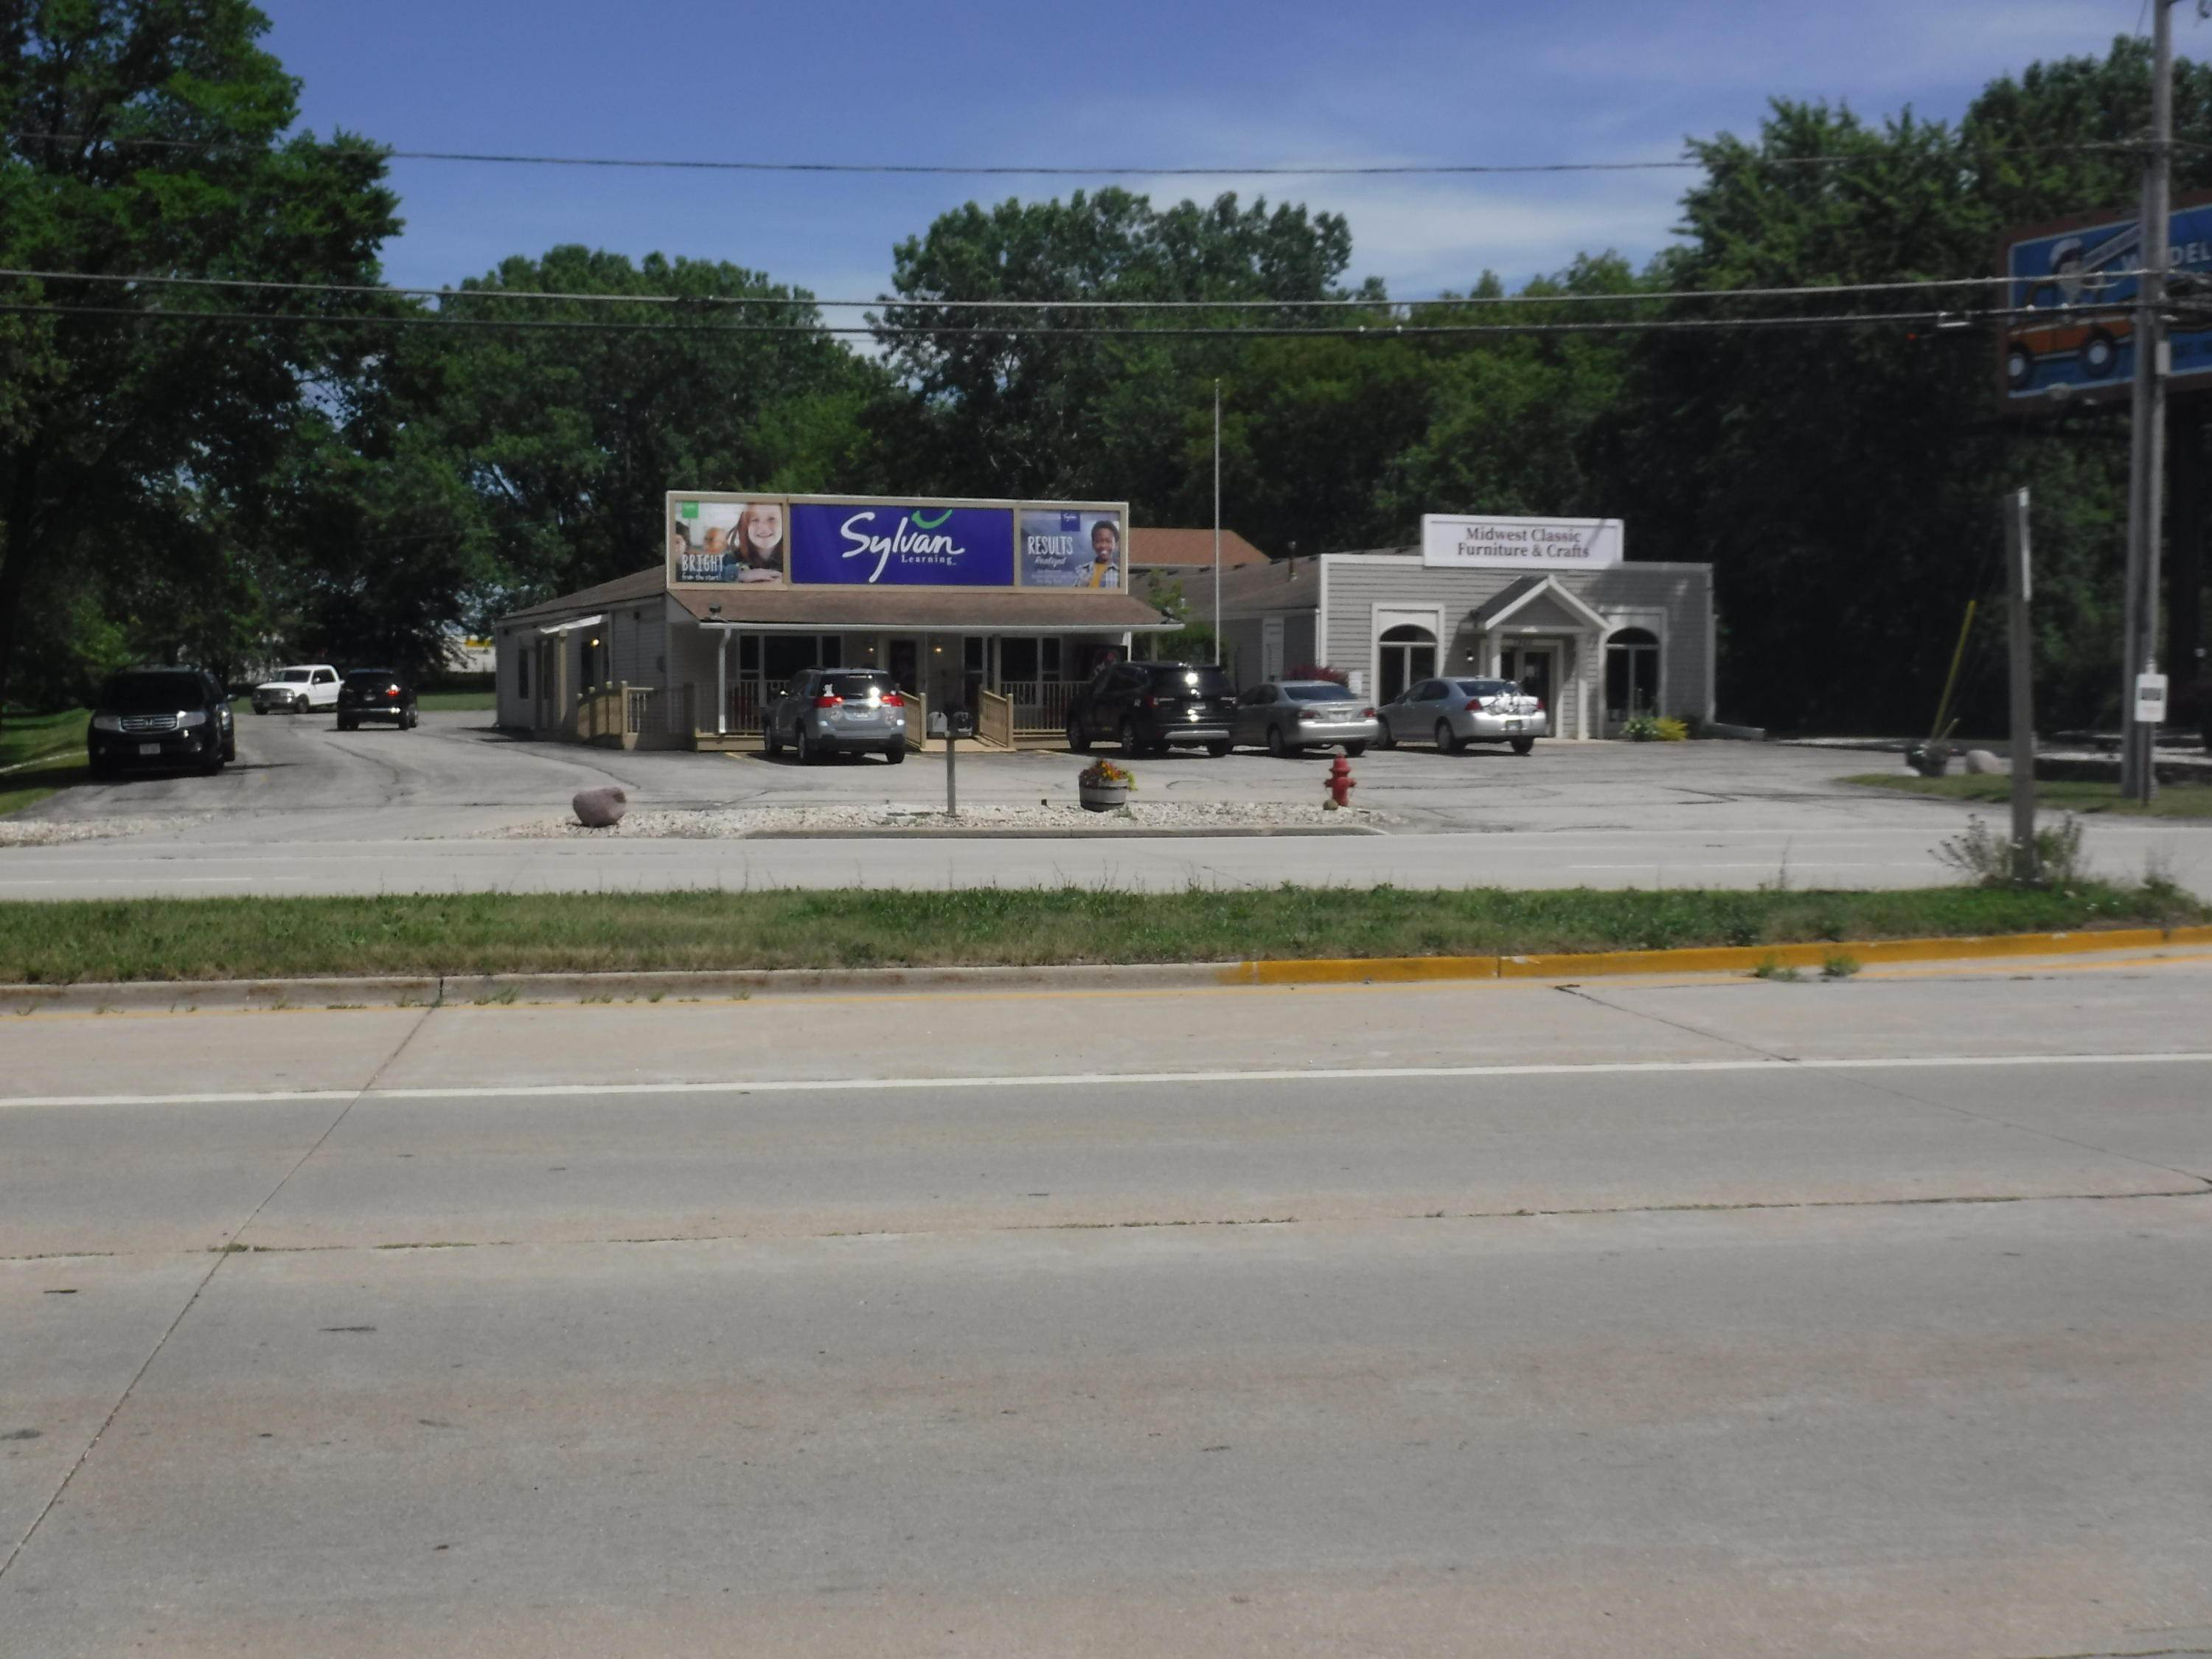 Commercial / Industrial for Sale at 7863 Green Bay Road Kenosha, Wisconsin 53142 United States